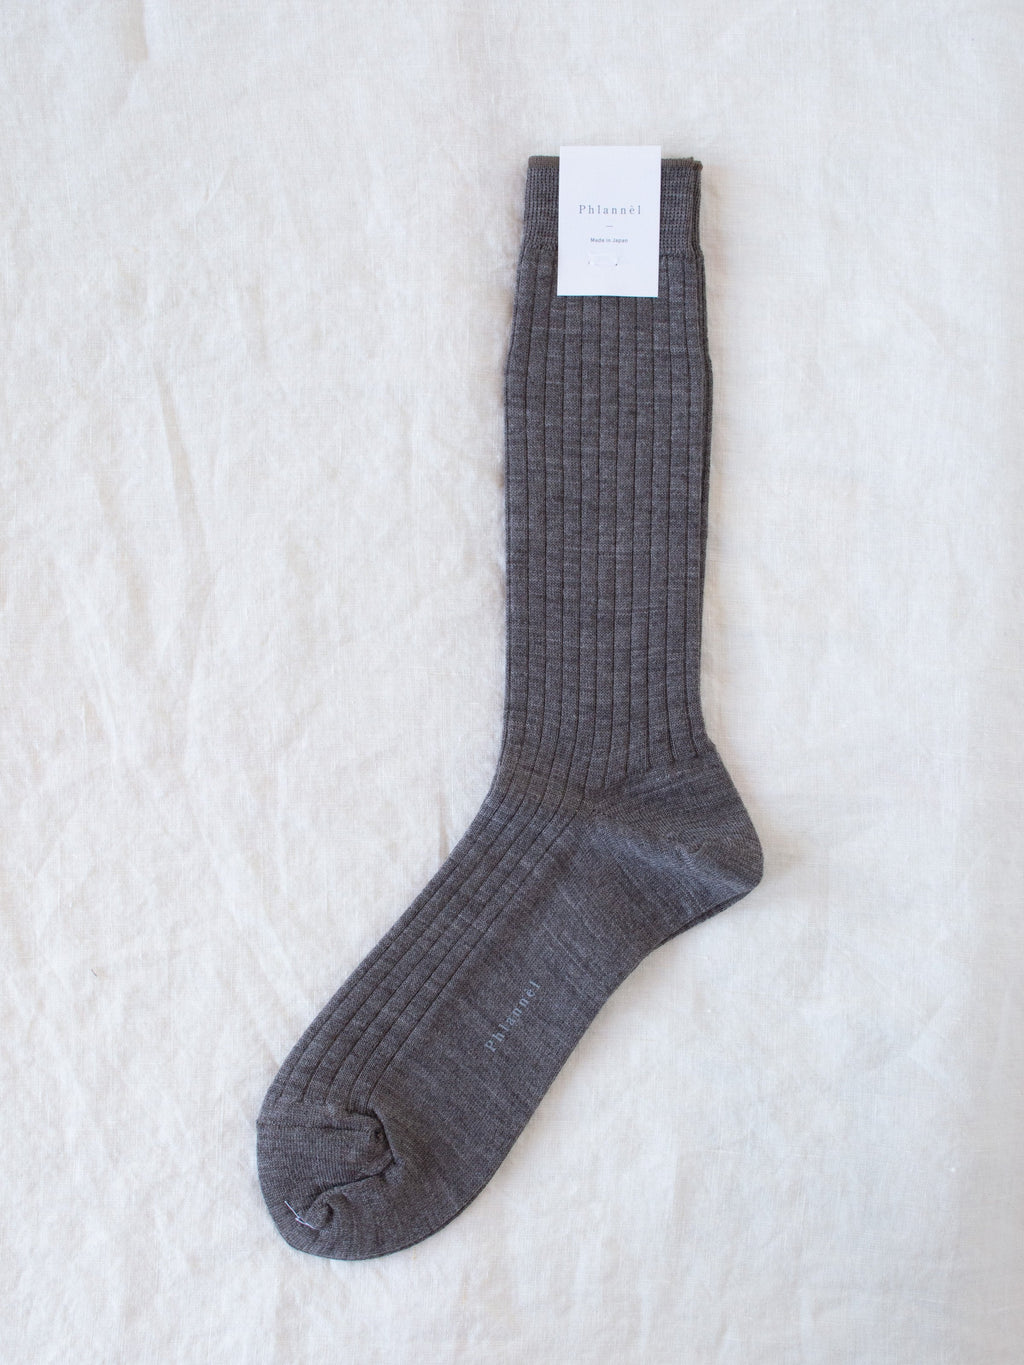 Namu Shop - Phlannel Wool Socks